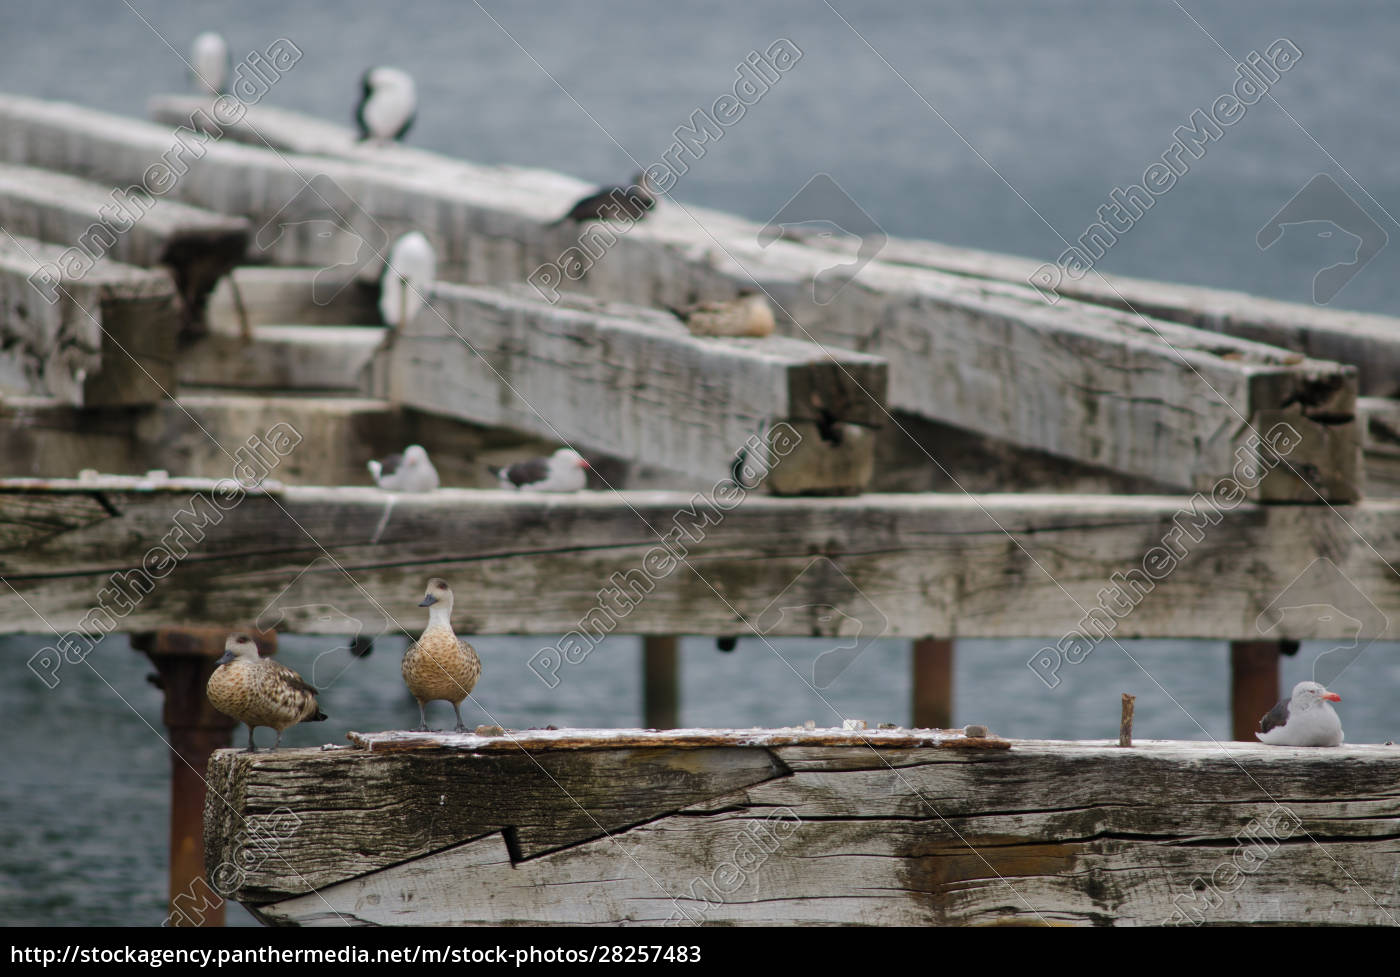 patagonian, crested, ducks, to, the, left - 28257483